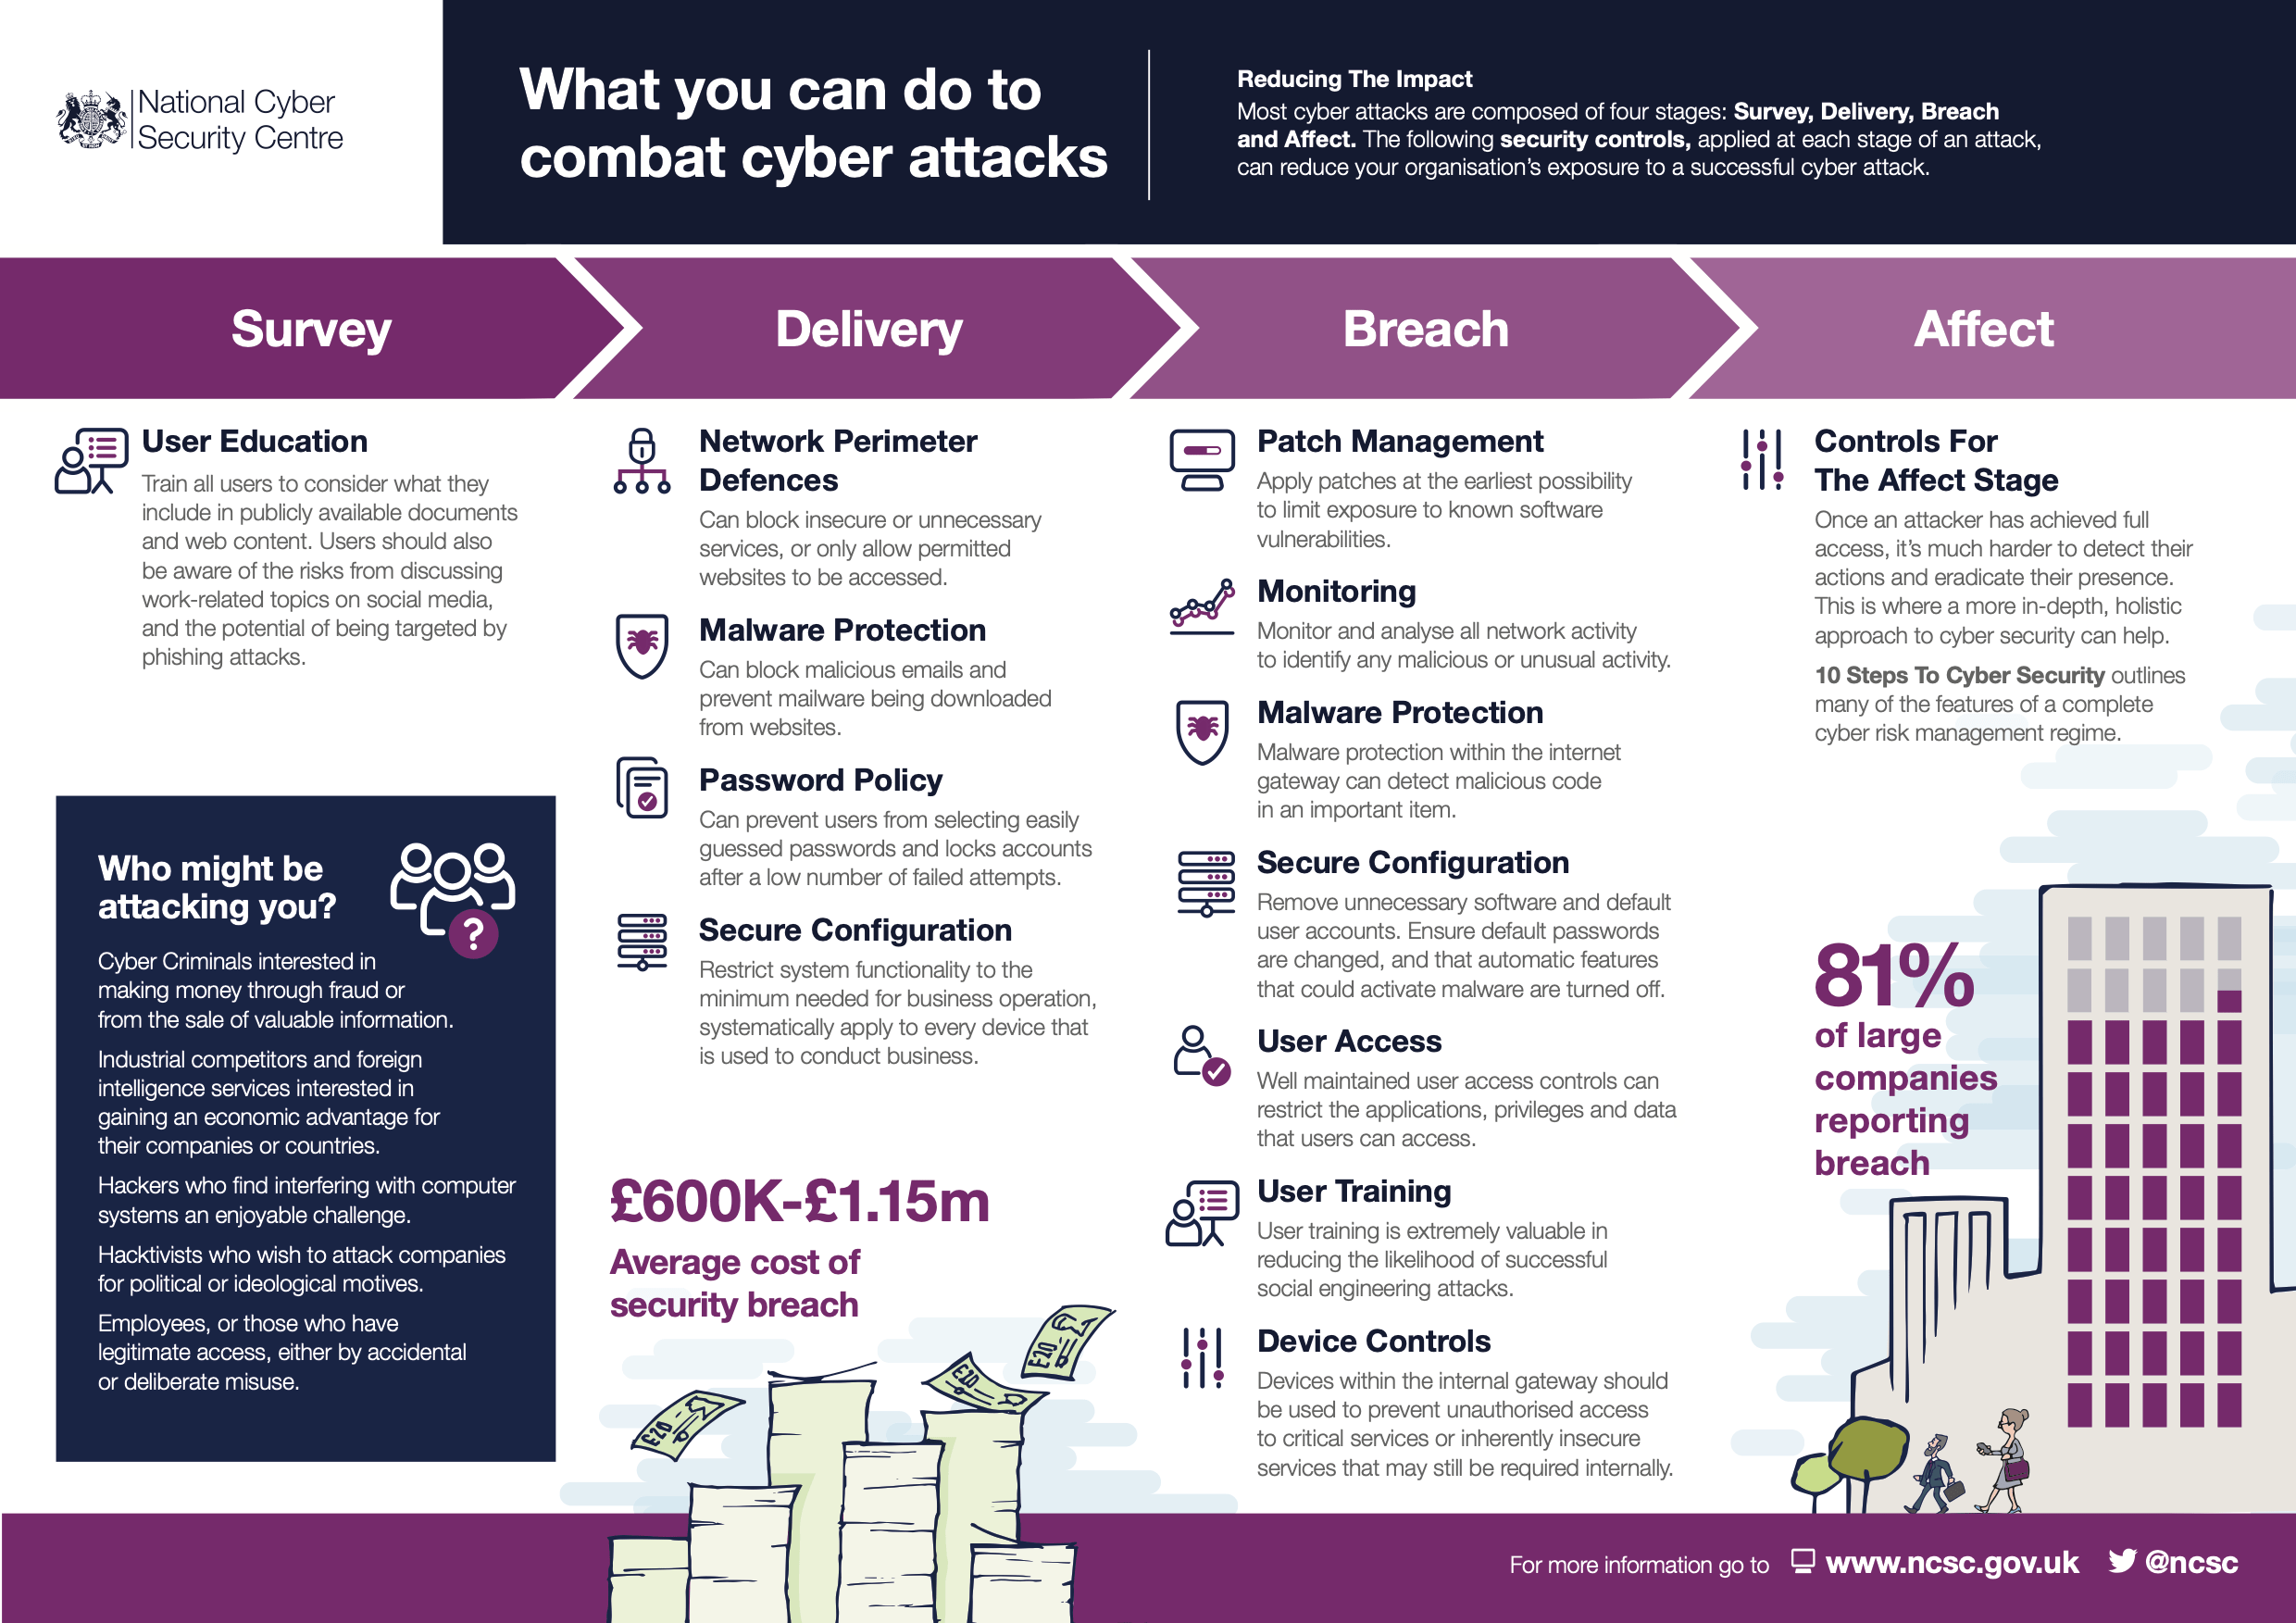 What You Can Do to Combat Cyber Attacks Infographic